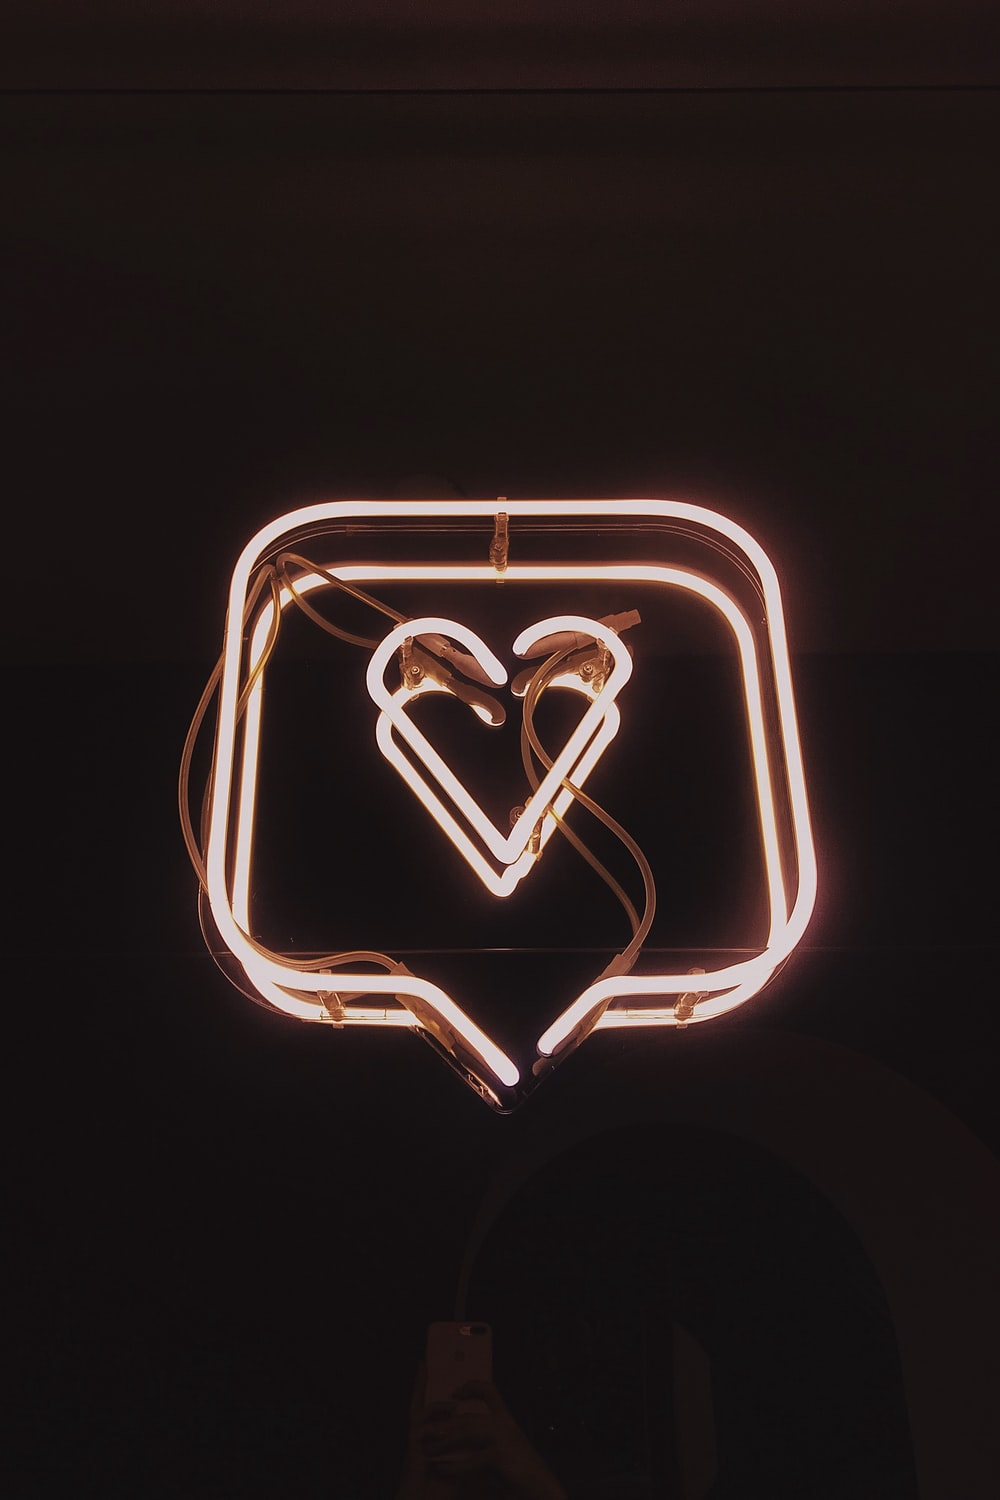 lighted square heart neon signage